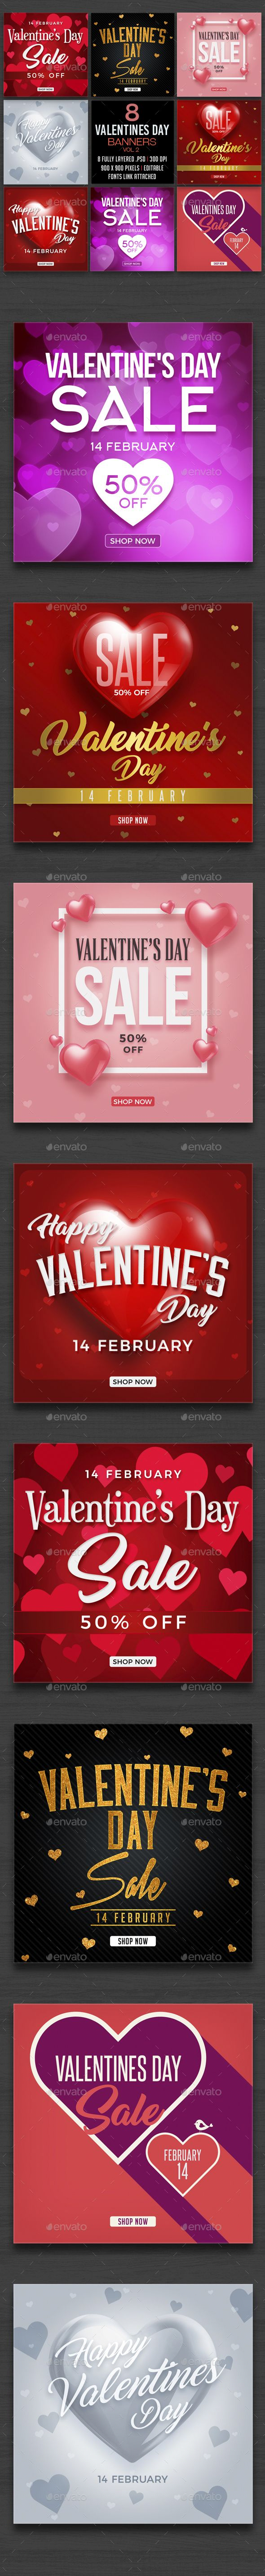 Valentines Day Banners Vol1 - Banners & Ads Web Elements